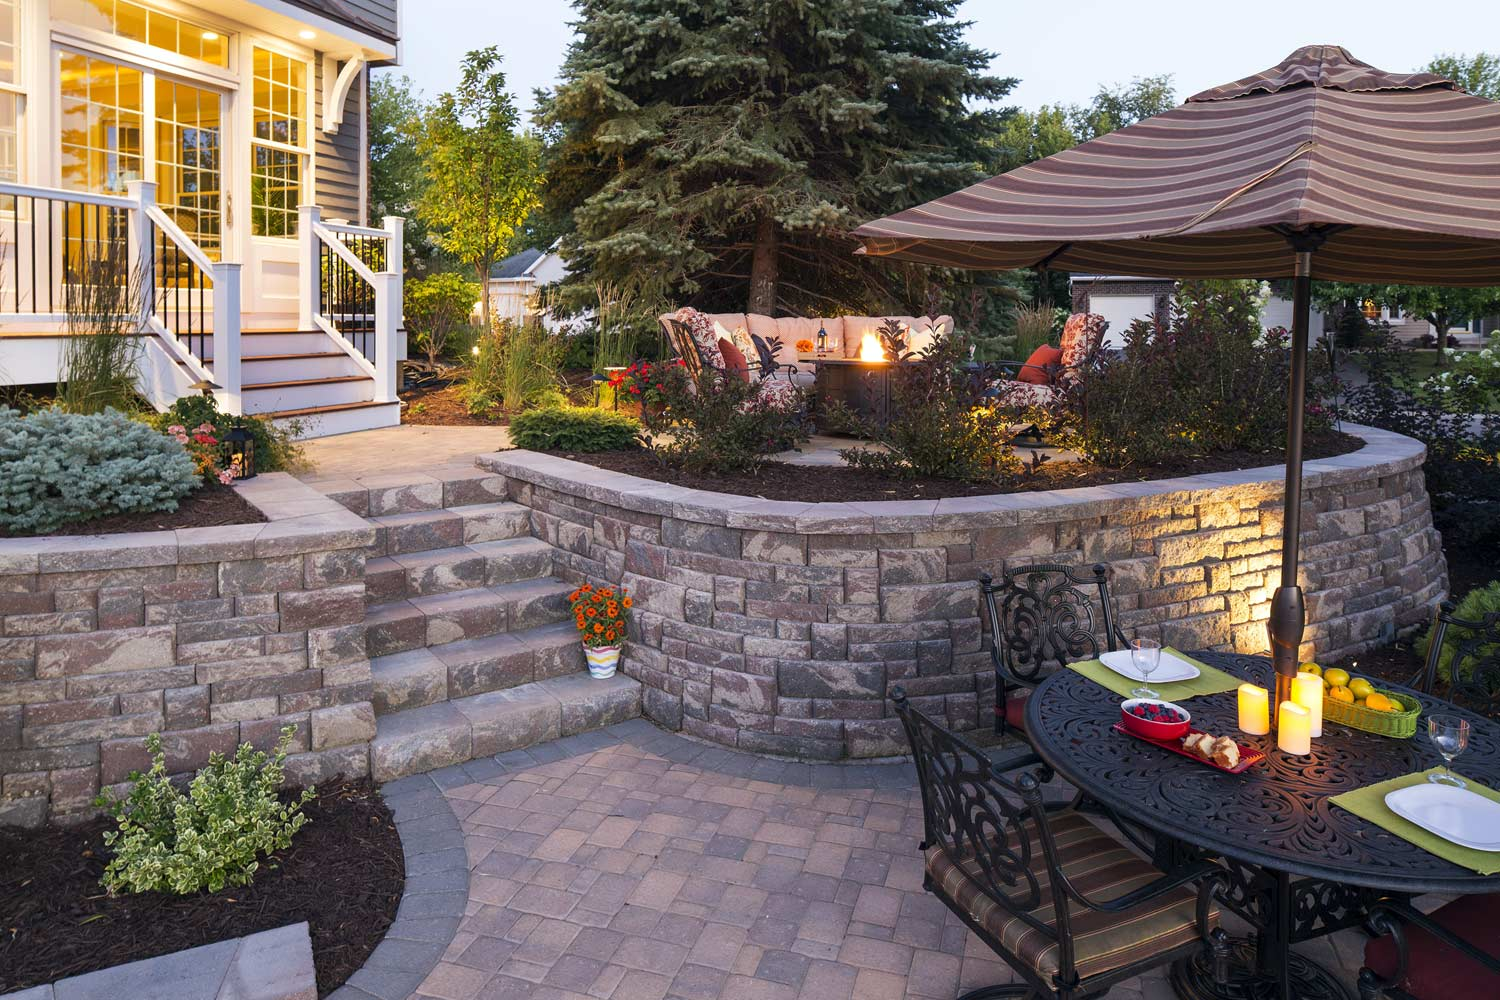 Modular block multi-level backyard retaining walls help manage this steeply sloping back yard